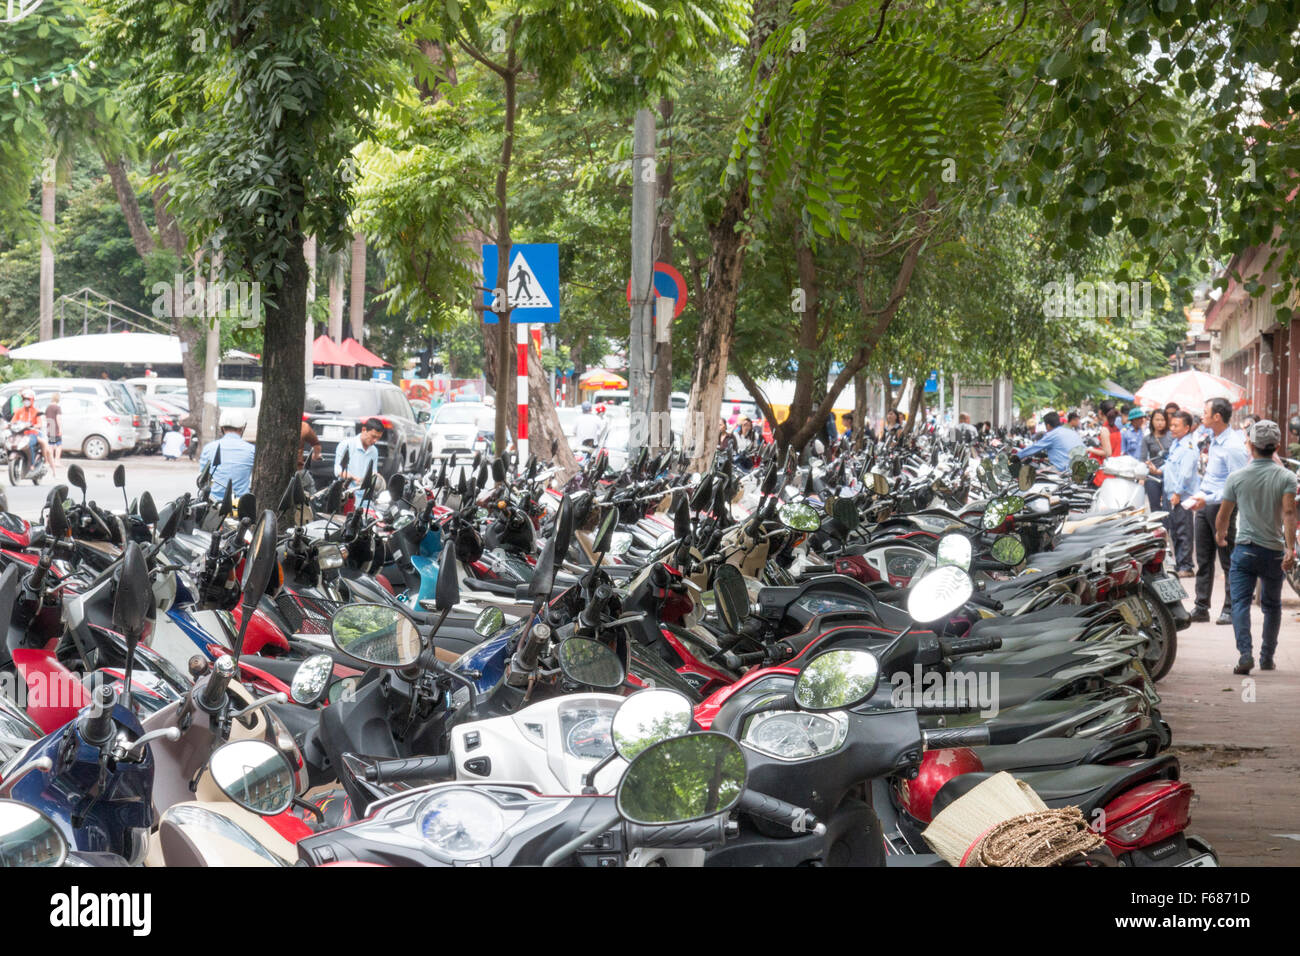 congested parking of motorbikes and scooters in Hanoi city centre,Vietnam - Stock Image